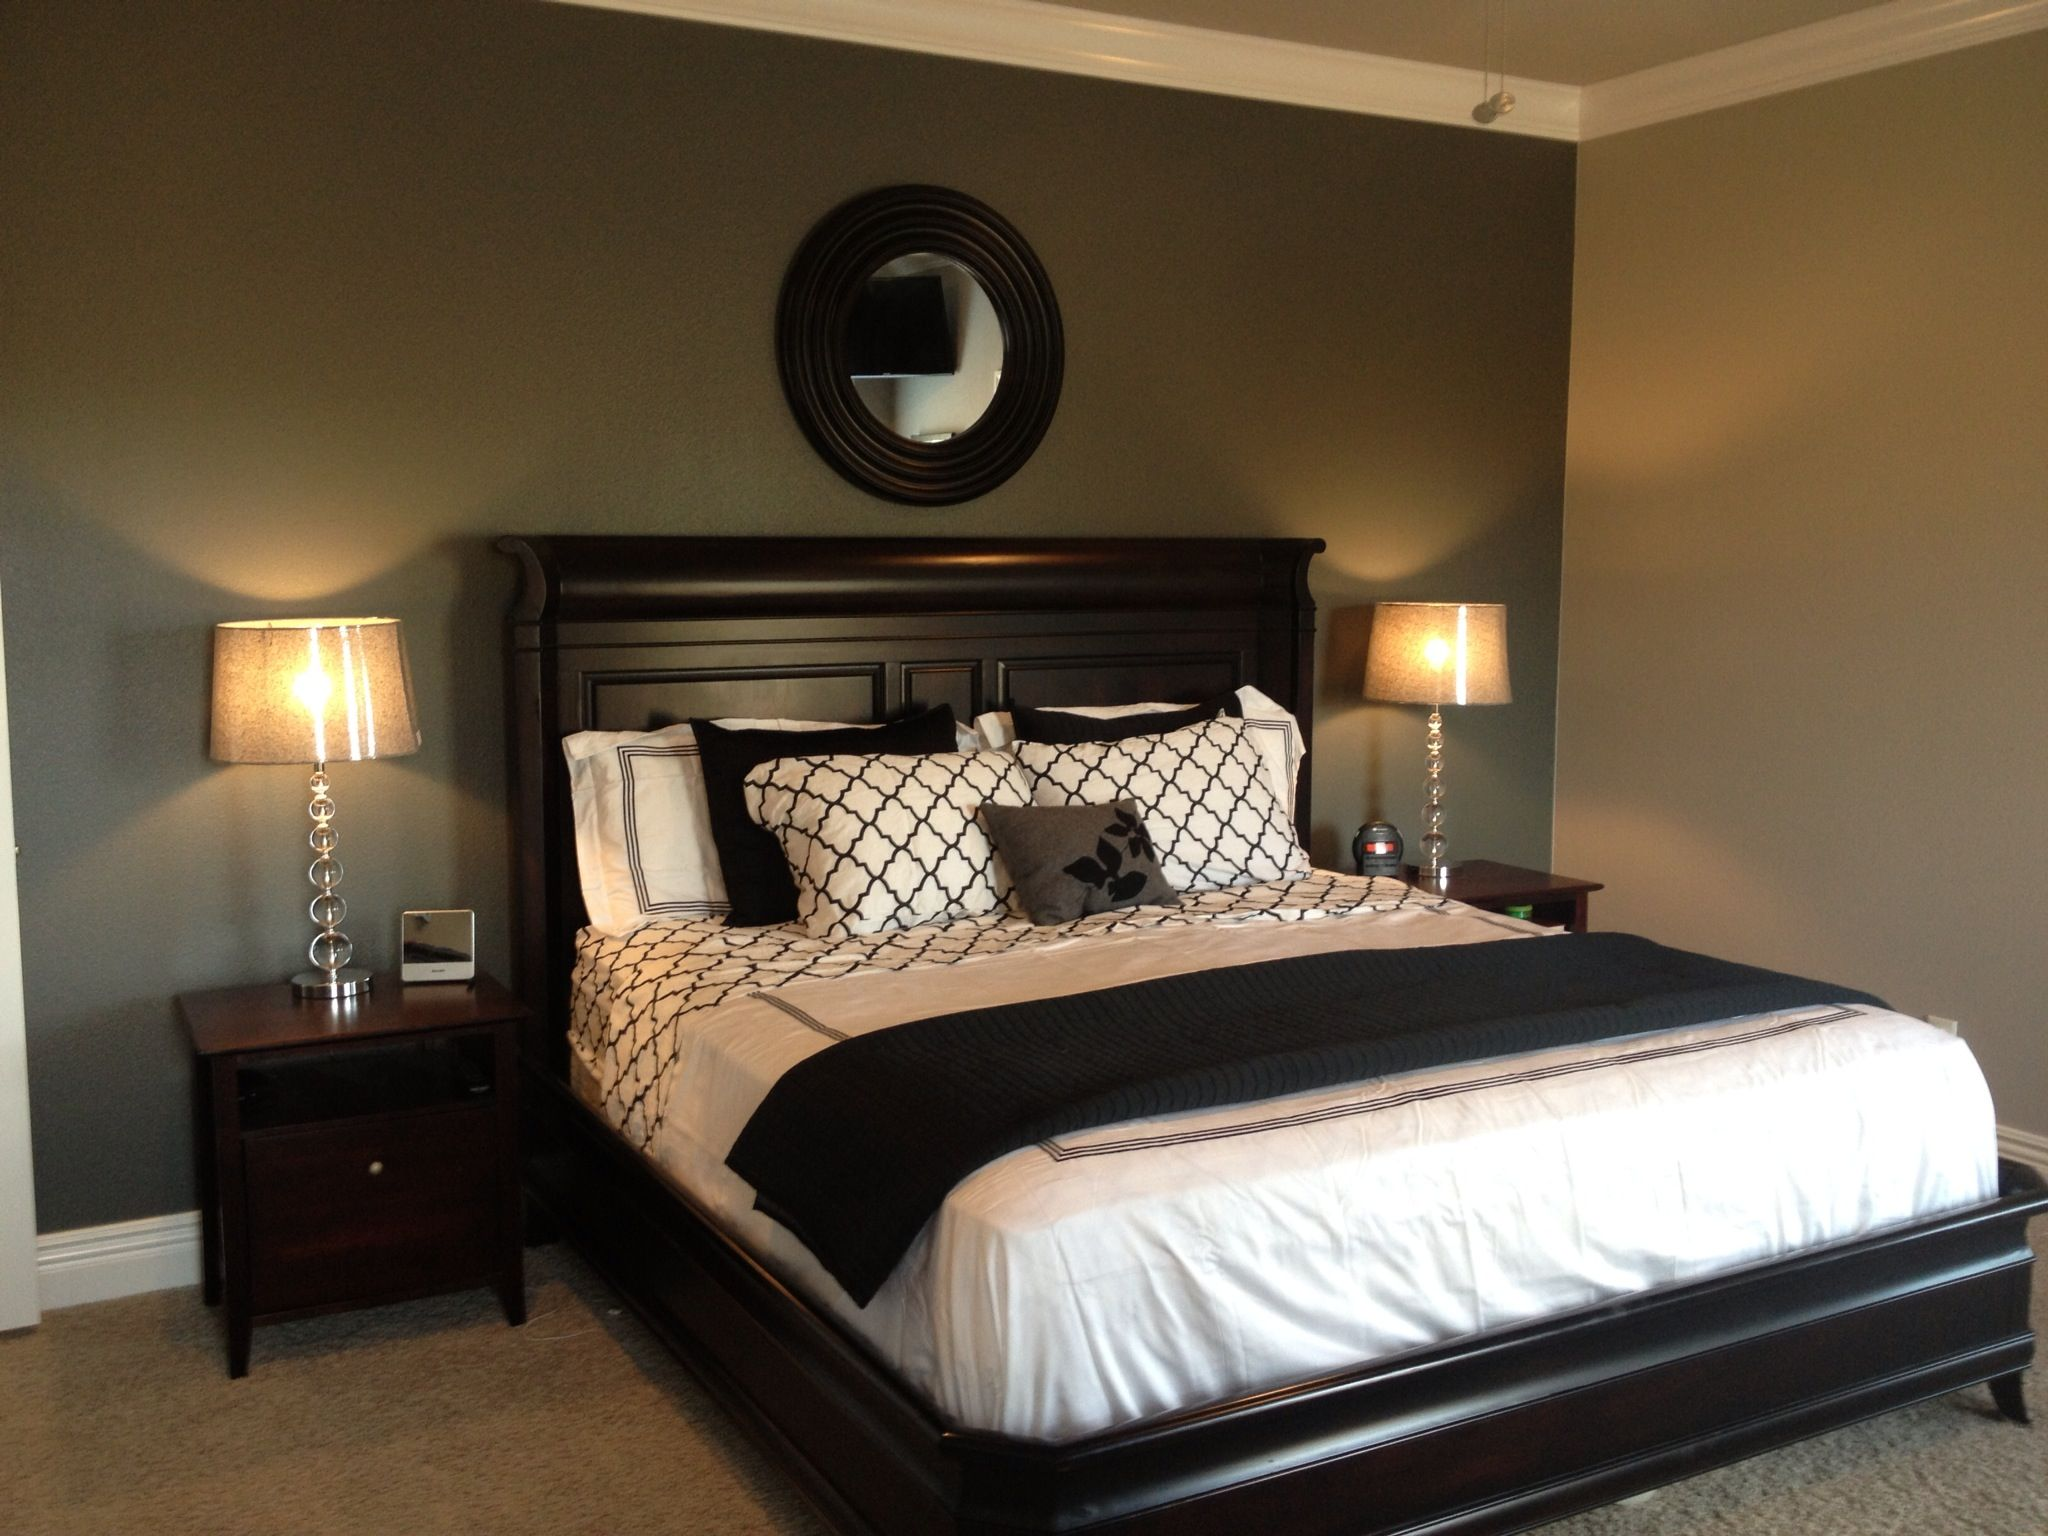 Grey Accent Wall With Black And White Bedding. Lamps